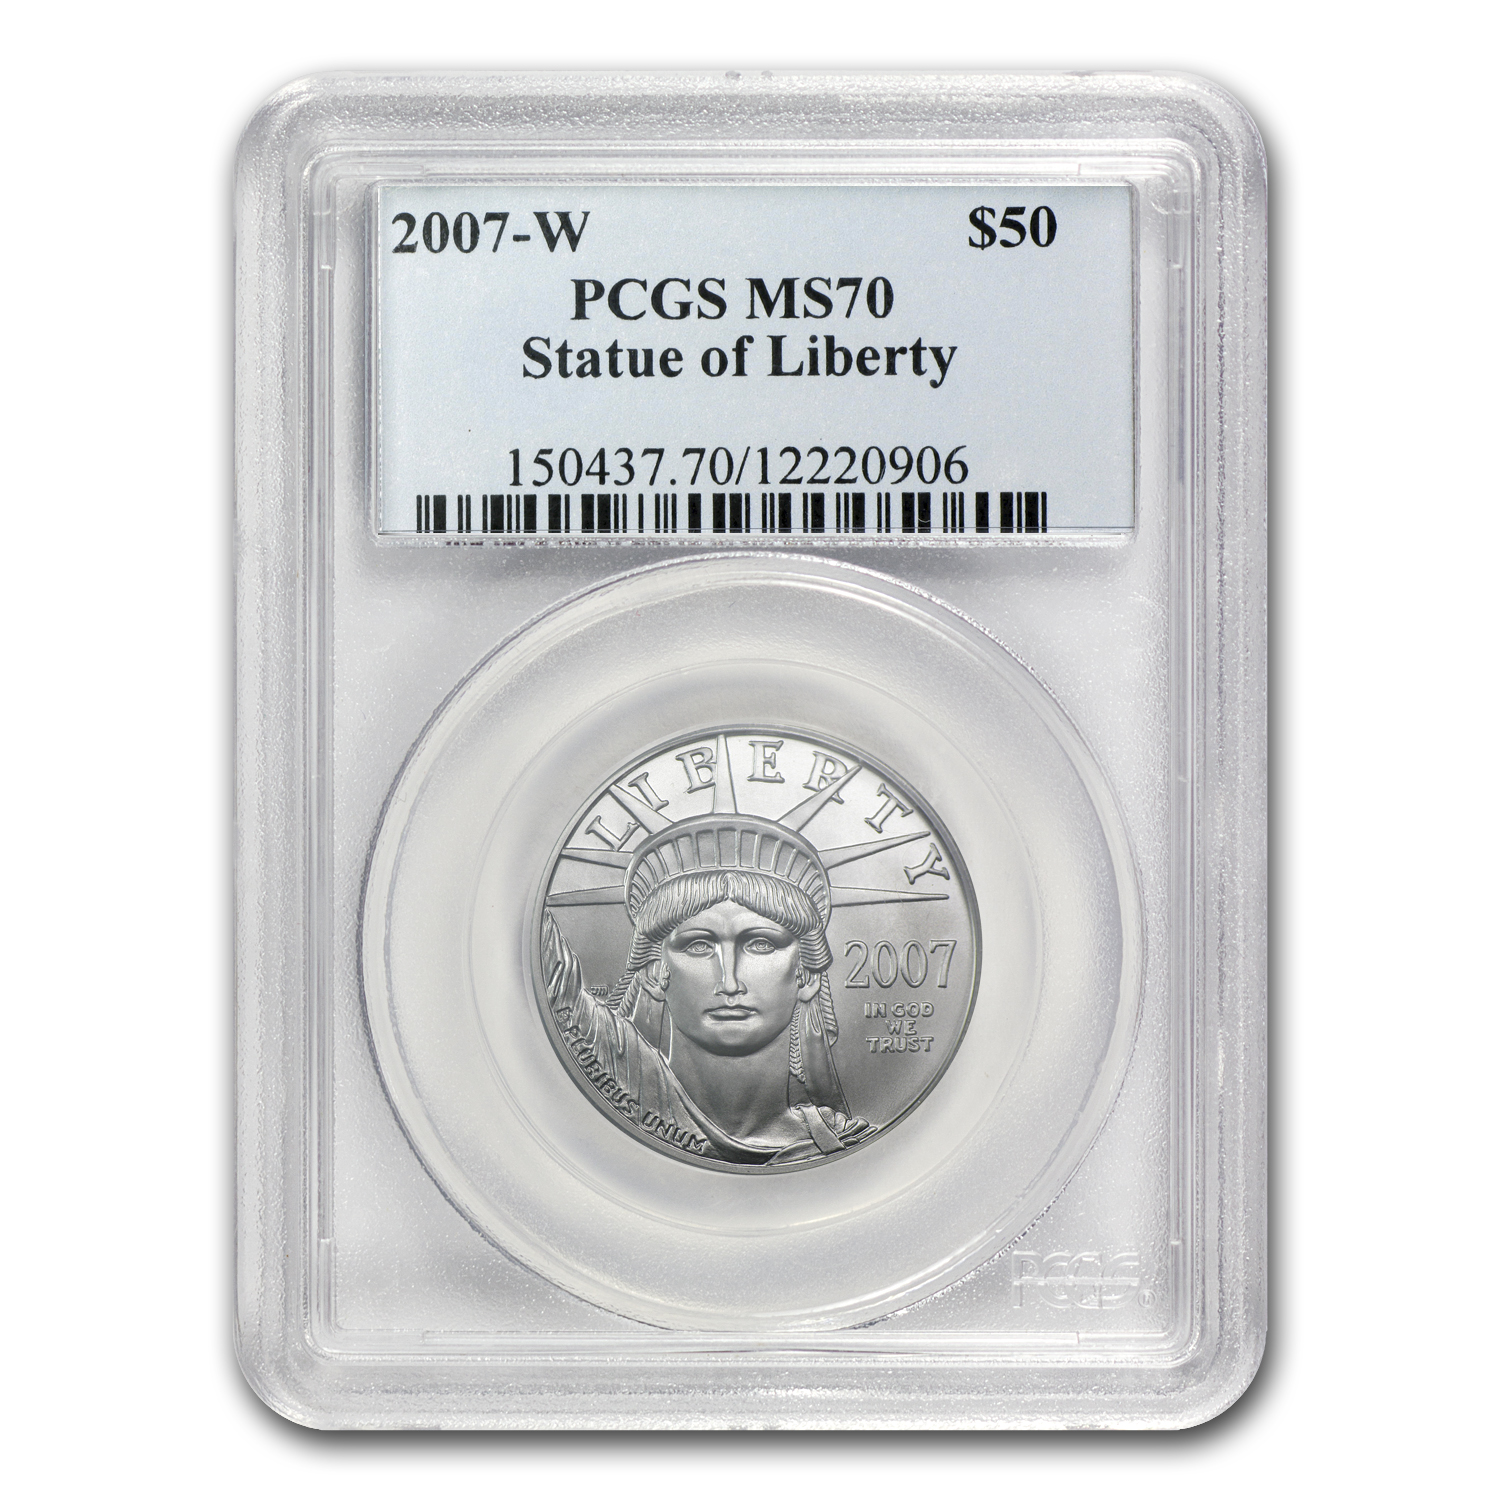 2007-W 1/2 oz Burnished Platinum American Eagle MS-70 PCGS